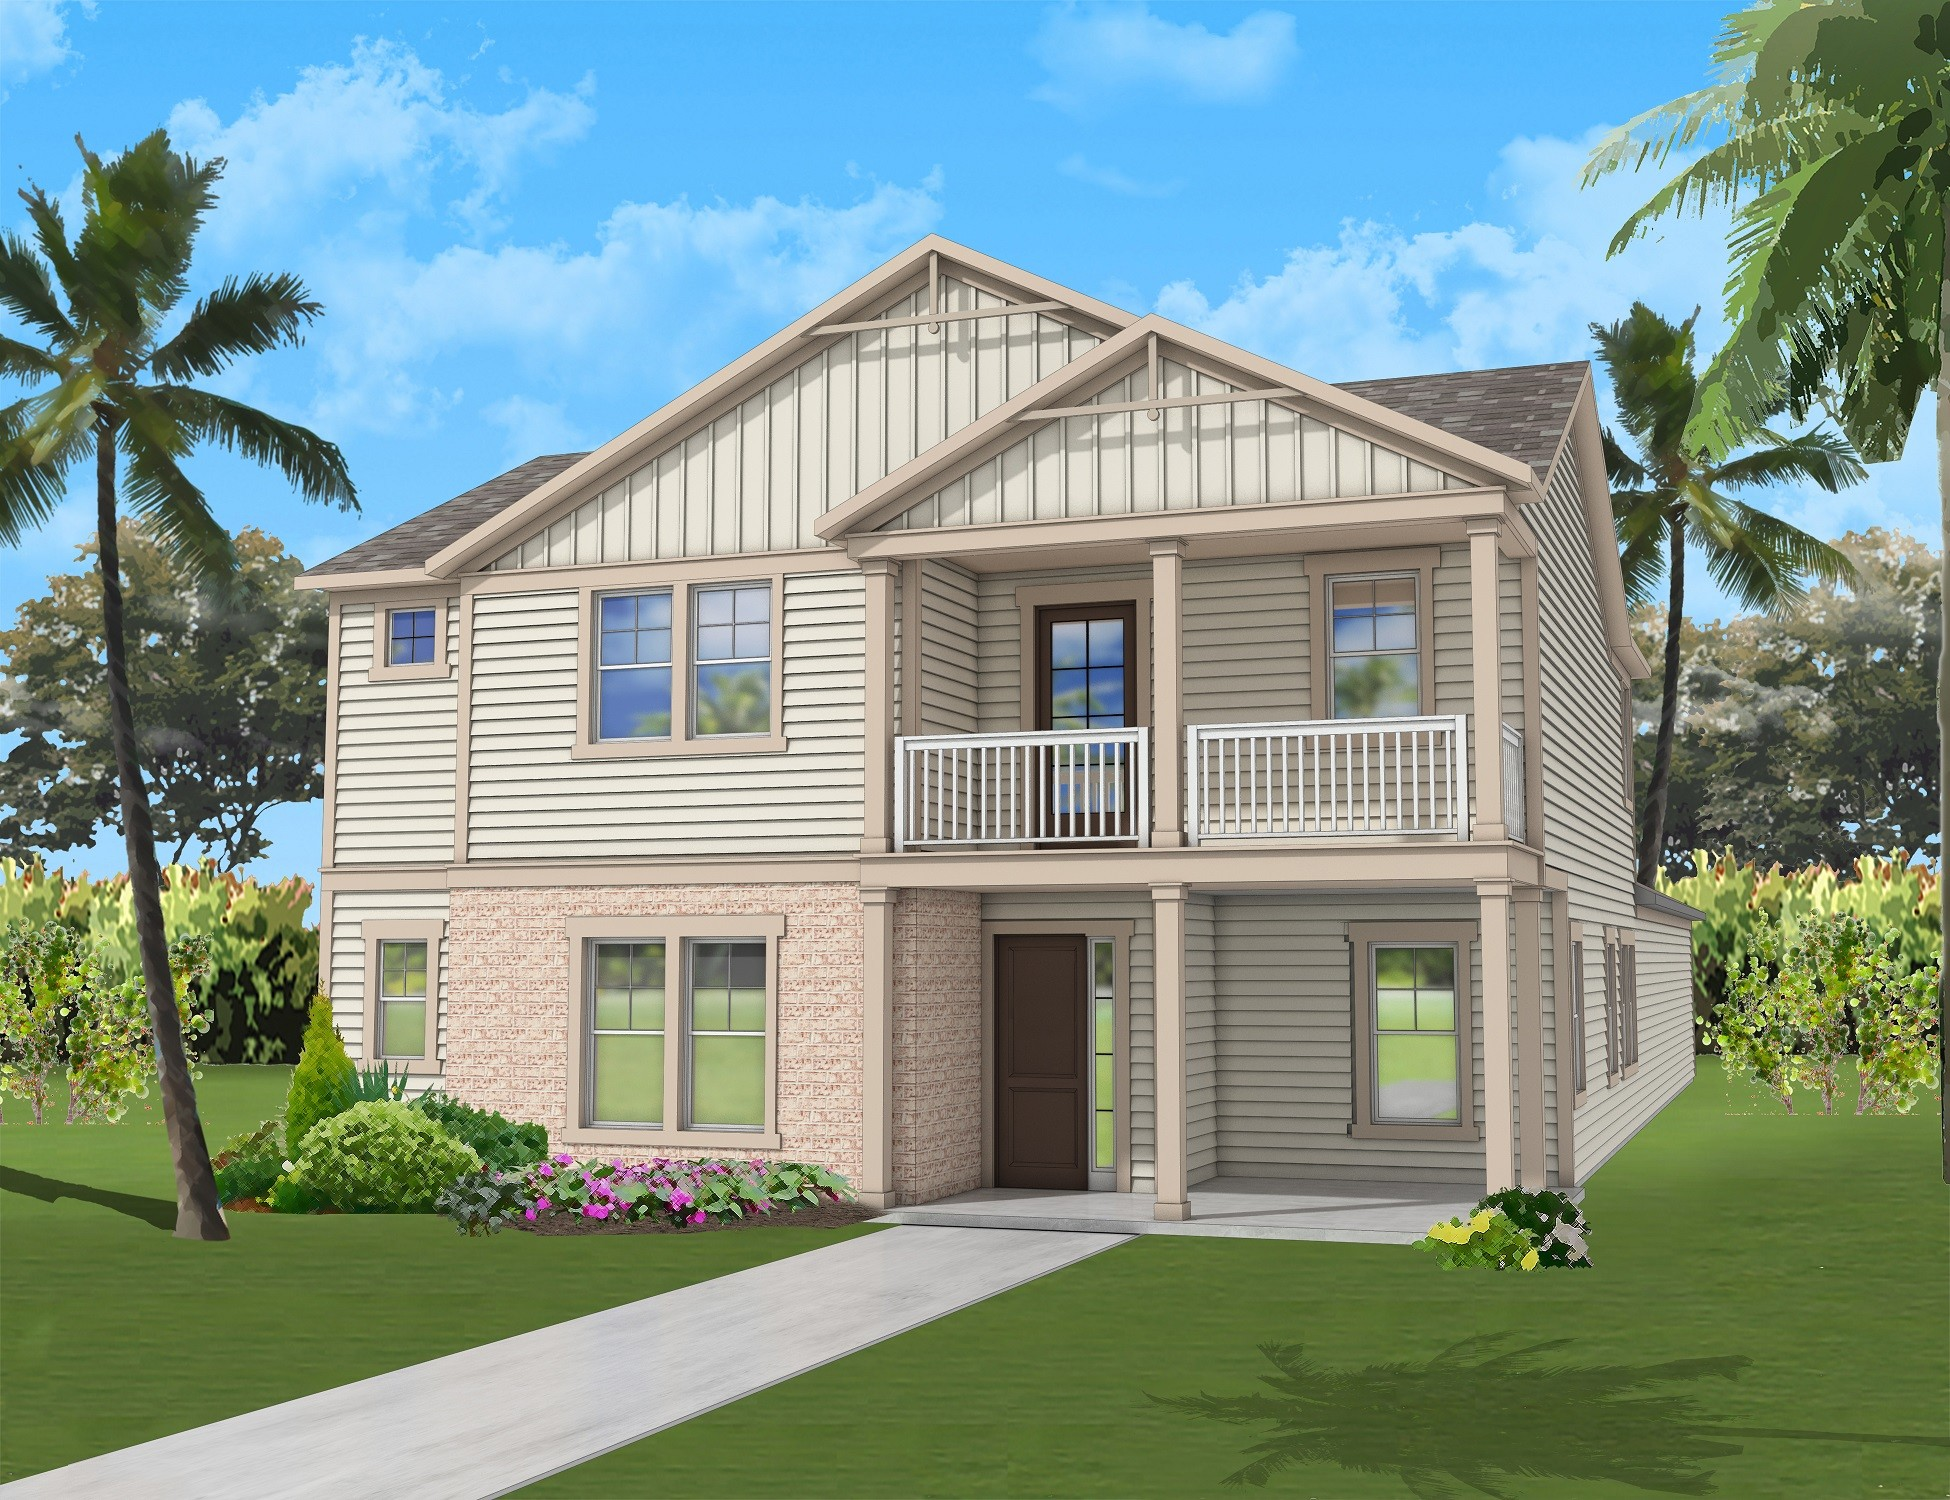 More than 30 home designs by Mattamy Homes, including the Charleston, are available at RiverTown.